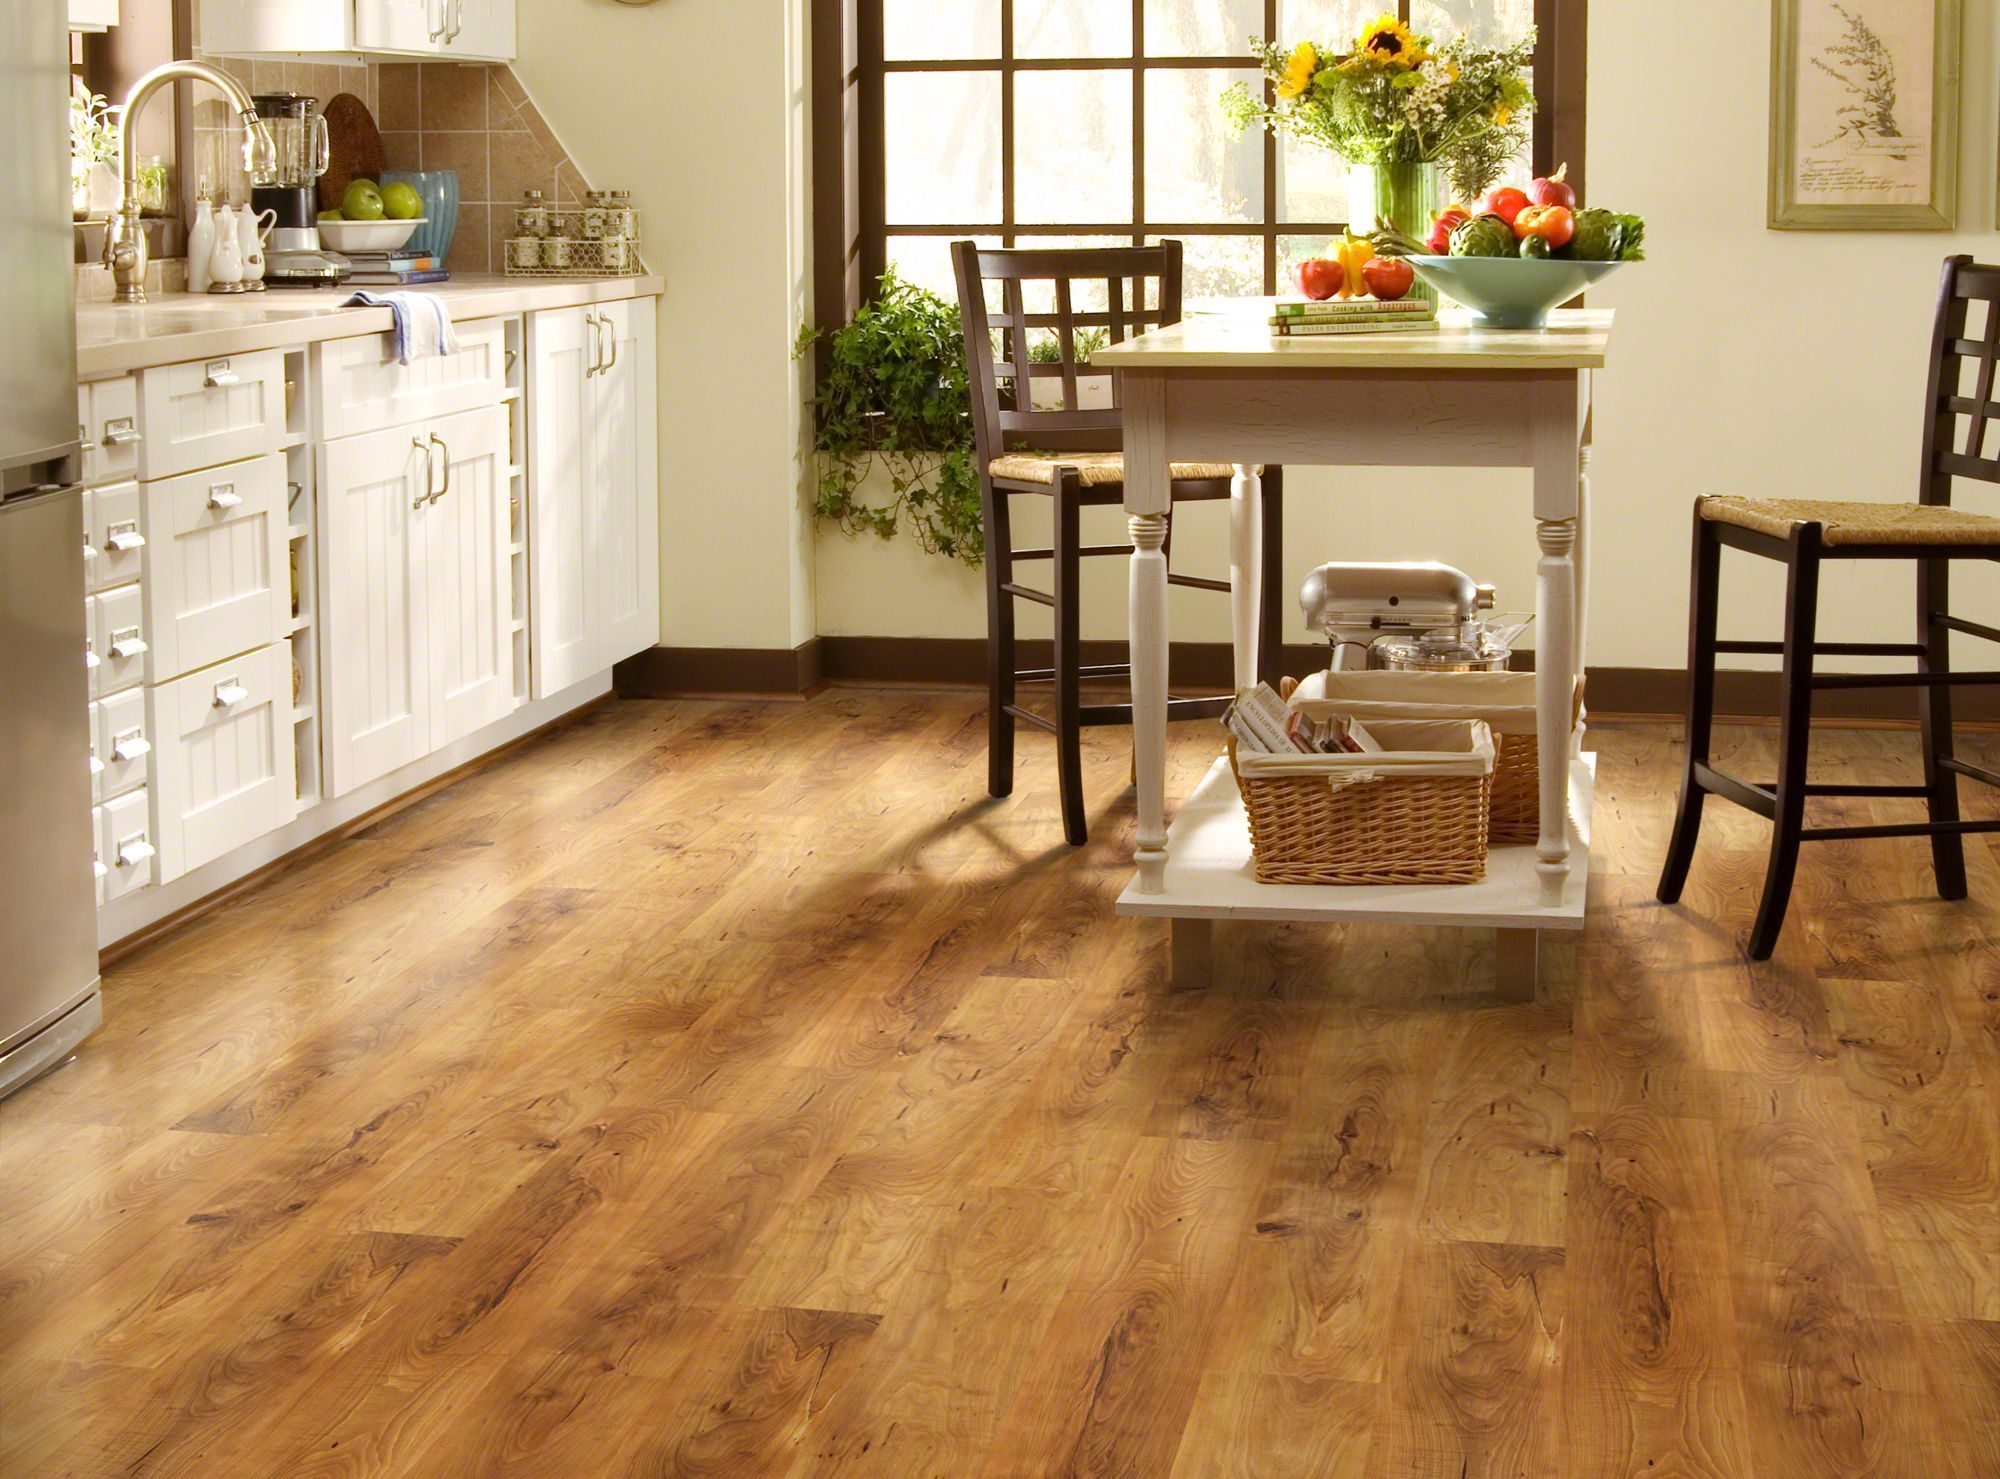 Get best laminateflooring service in milford floor for Milford flooring